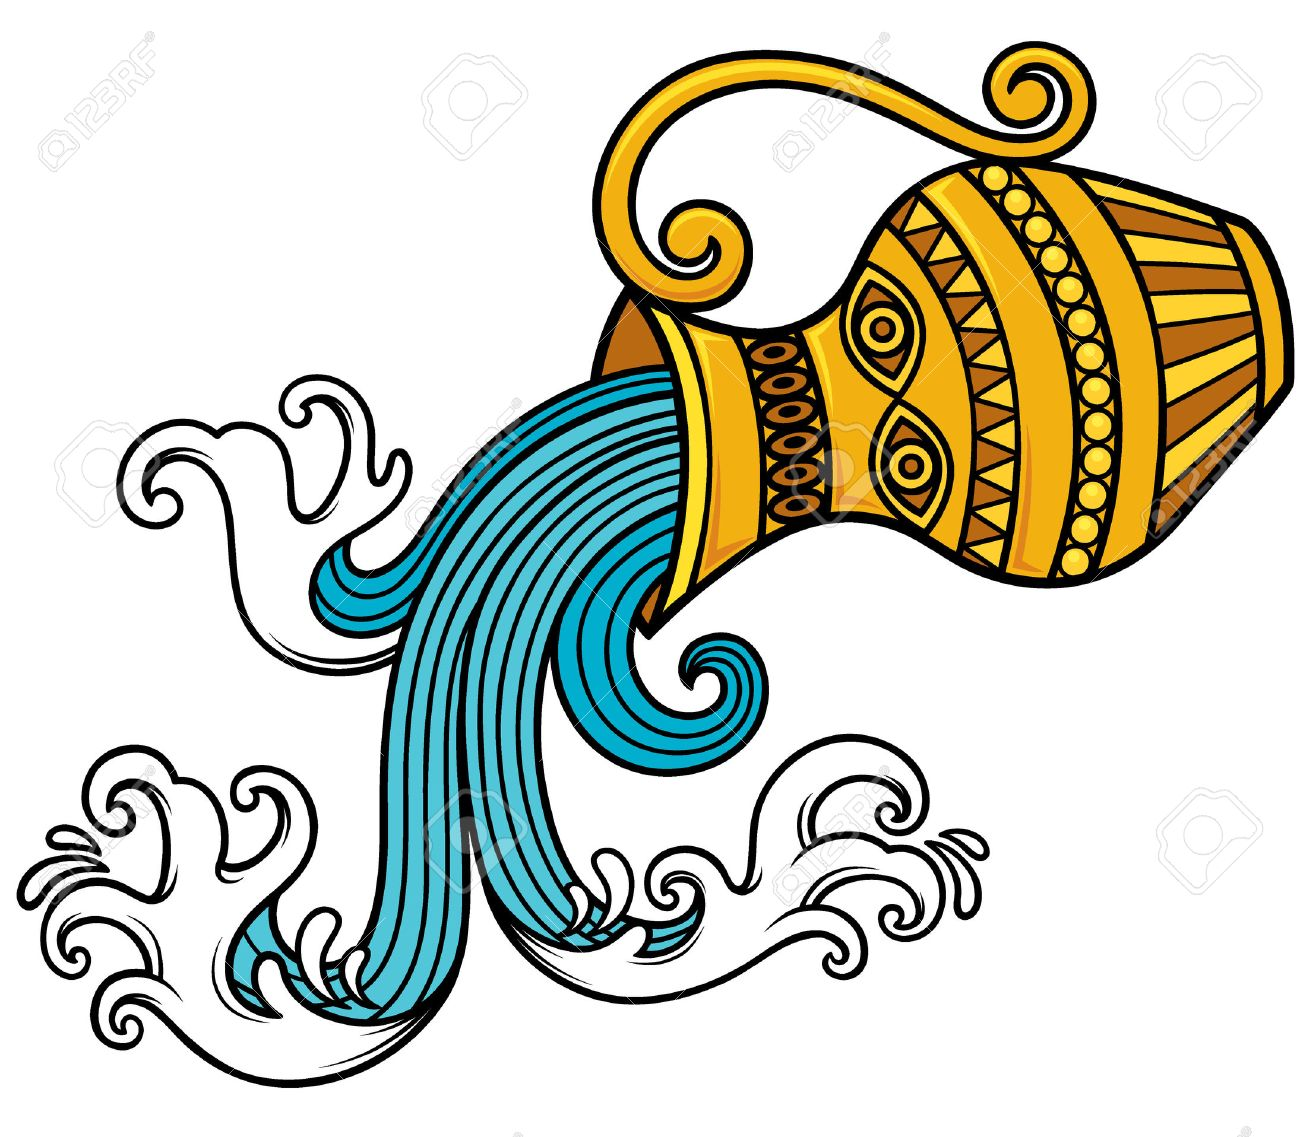 vector illustration of aquarius zodiac sign royalty free cliparts